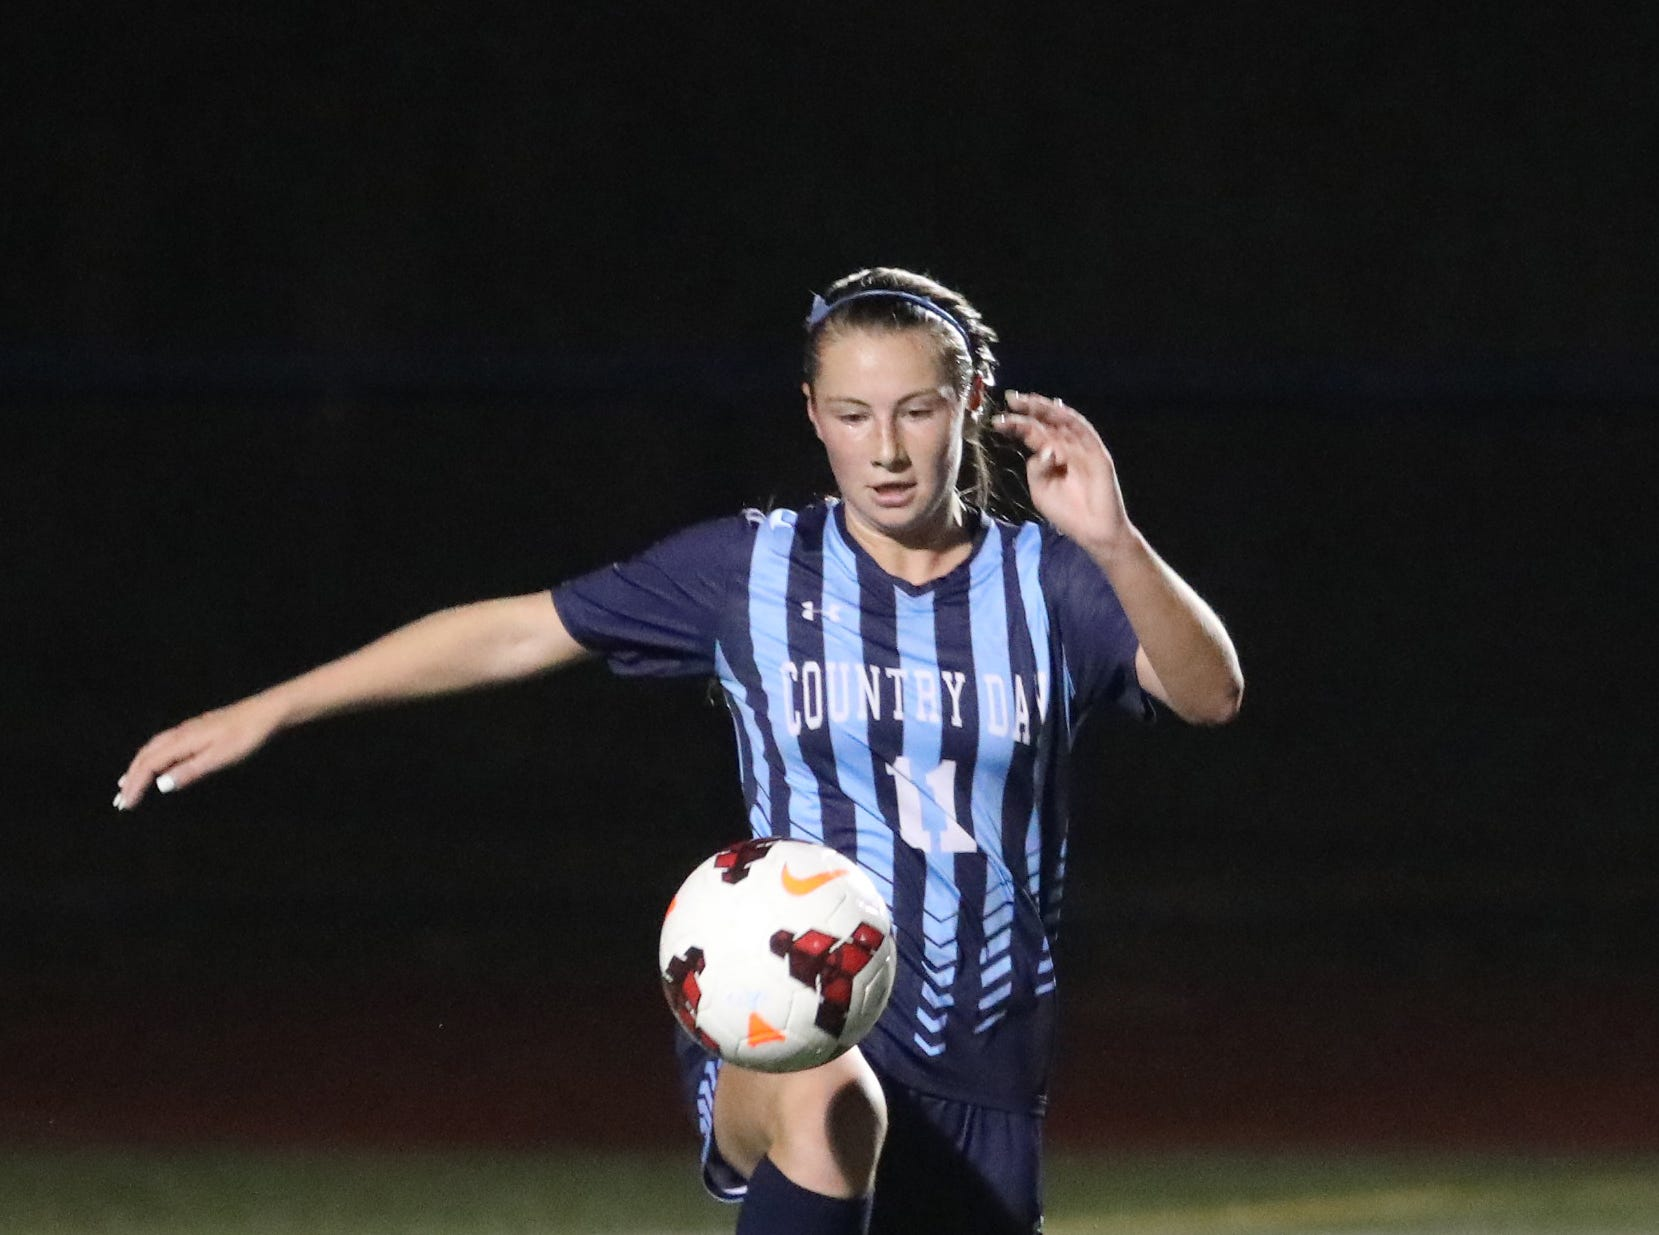 Cincinnati Country Day player  Jenna Setters during their tournament game, Saturday, Oct. 27,2018.